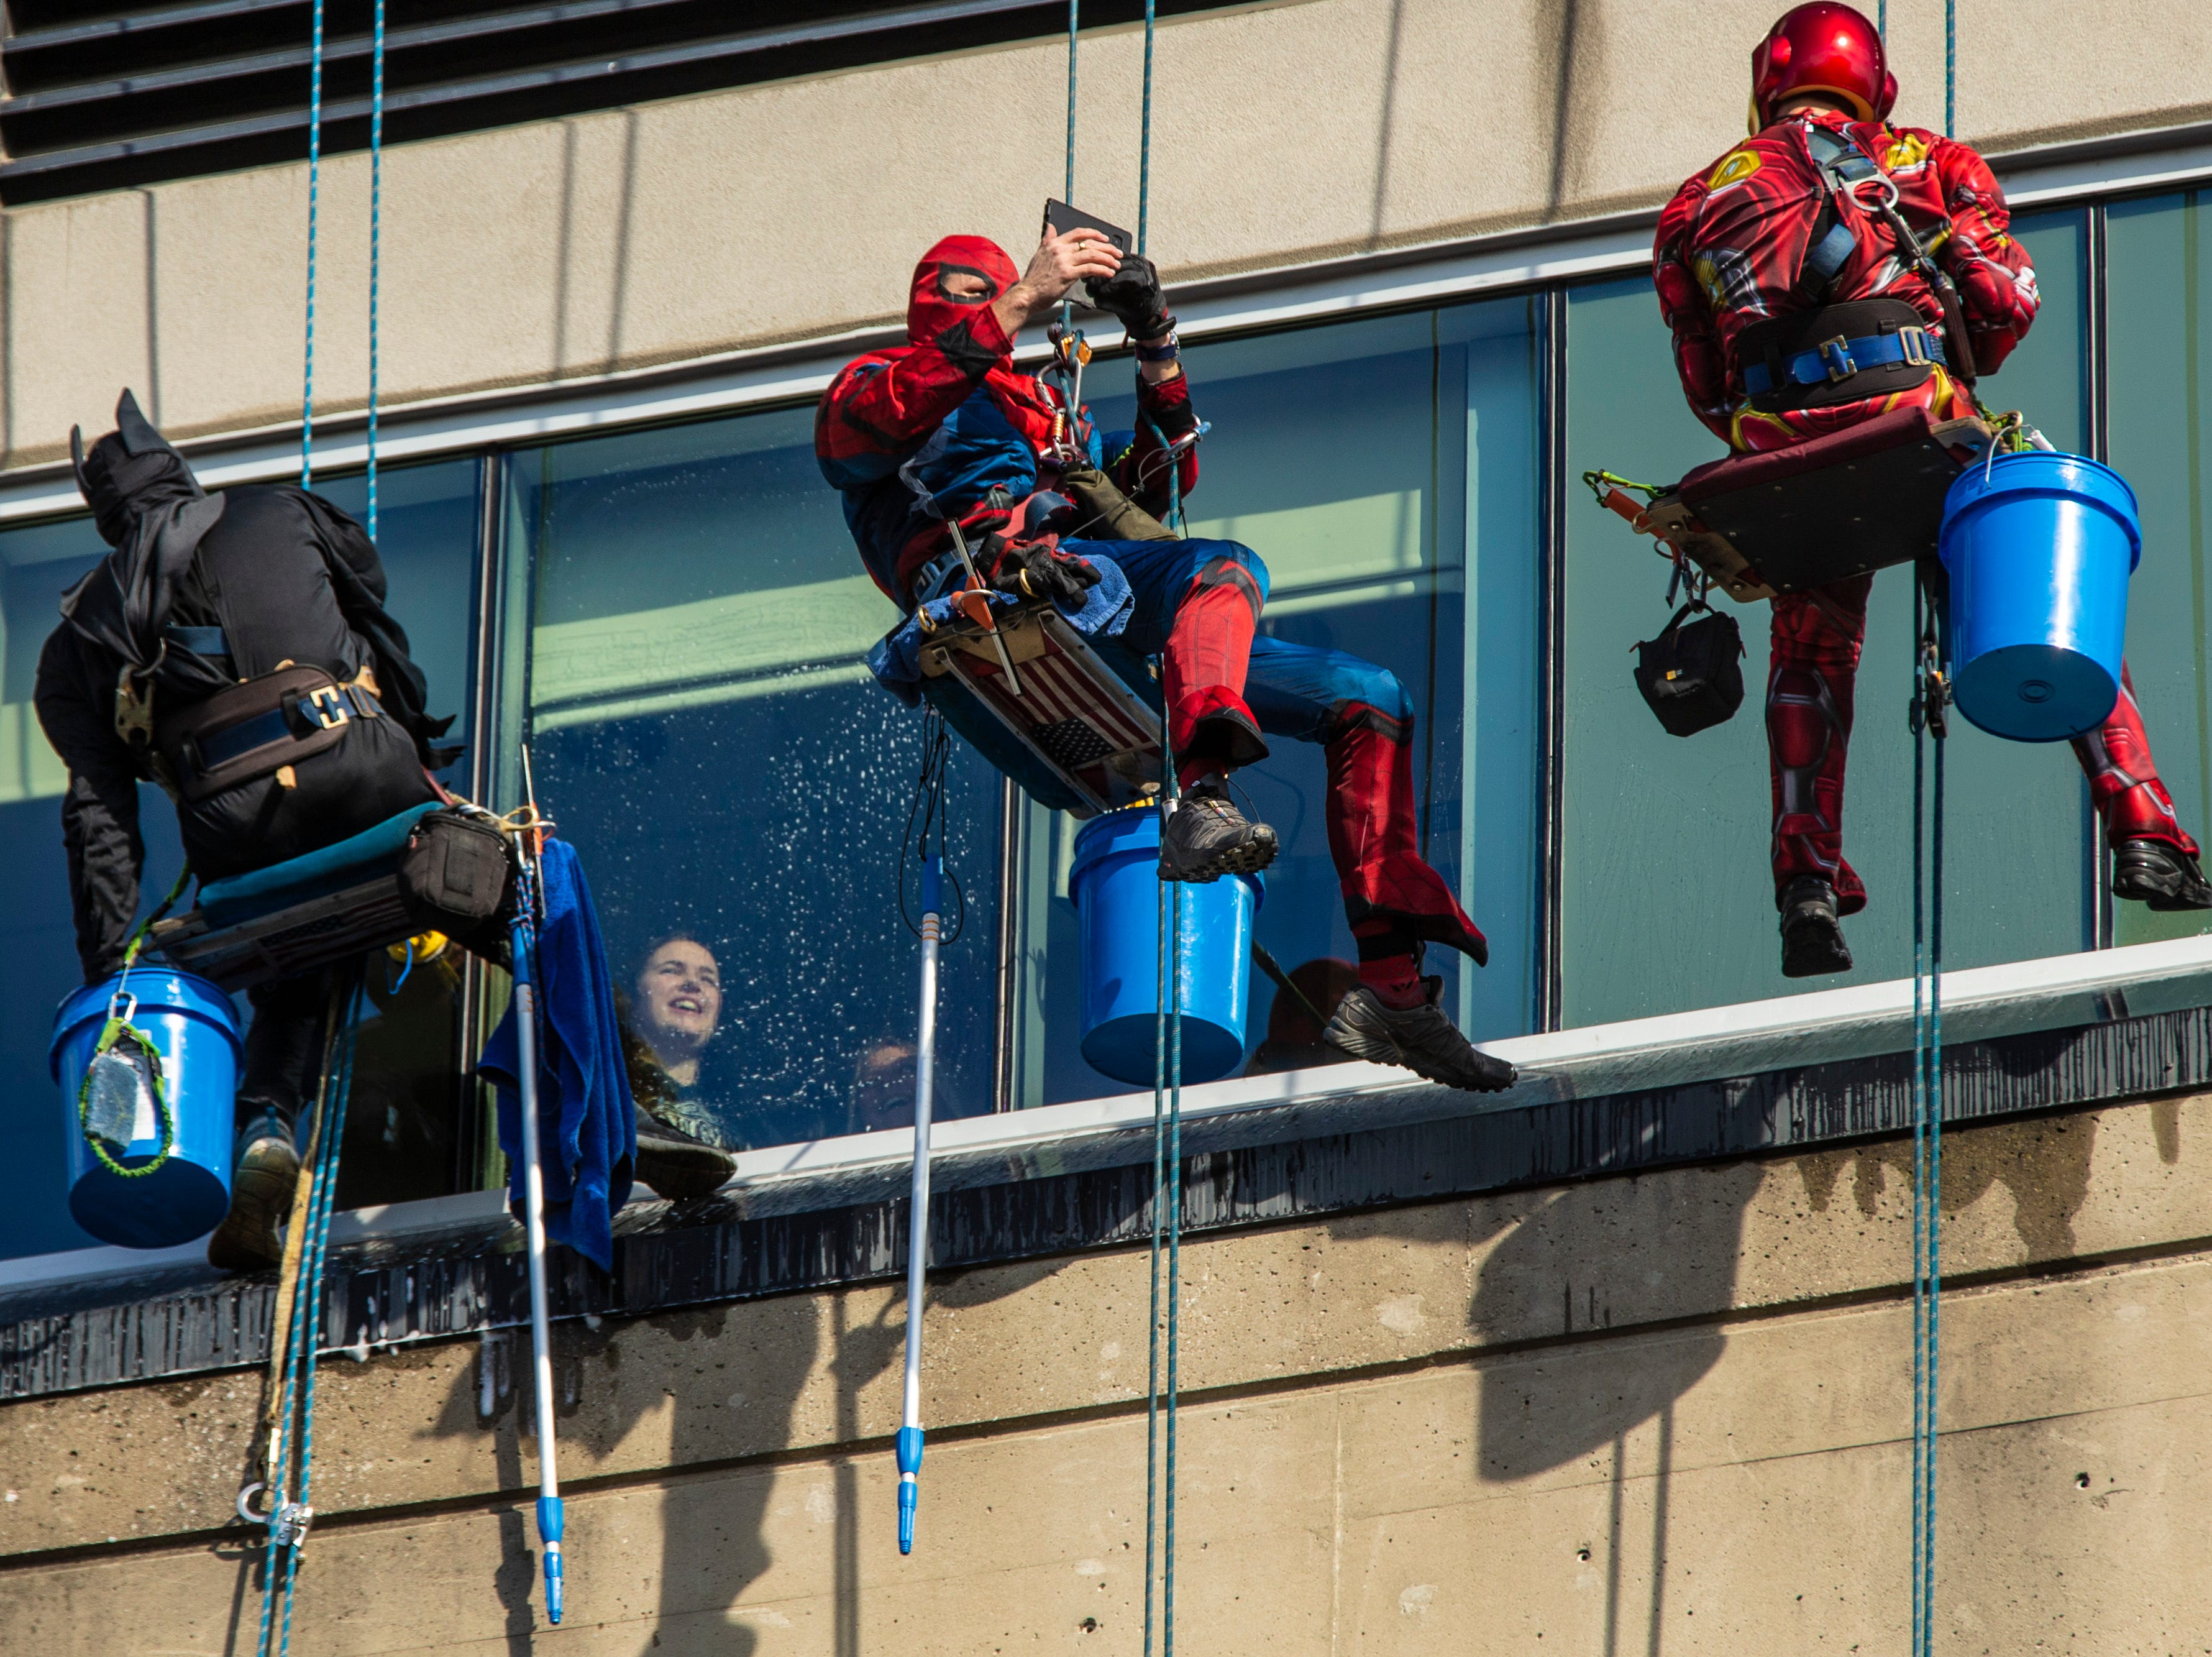 William Hart, from left, Duke Hart and Joe Haist with Pro Clean International wear super hero costumes while cleaning the windows at Norton Children's Hospital on Thursday. Feb. 21, 2019